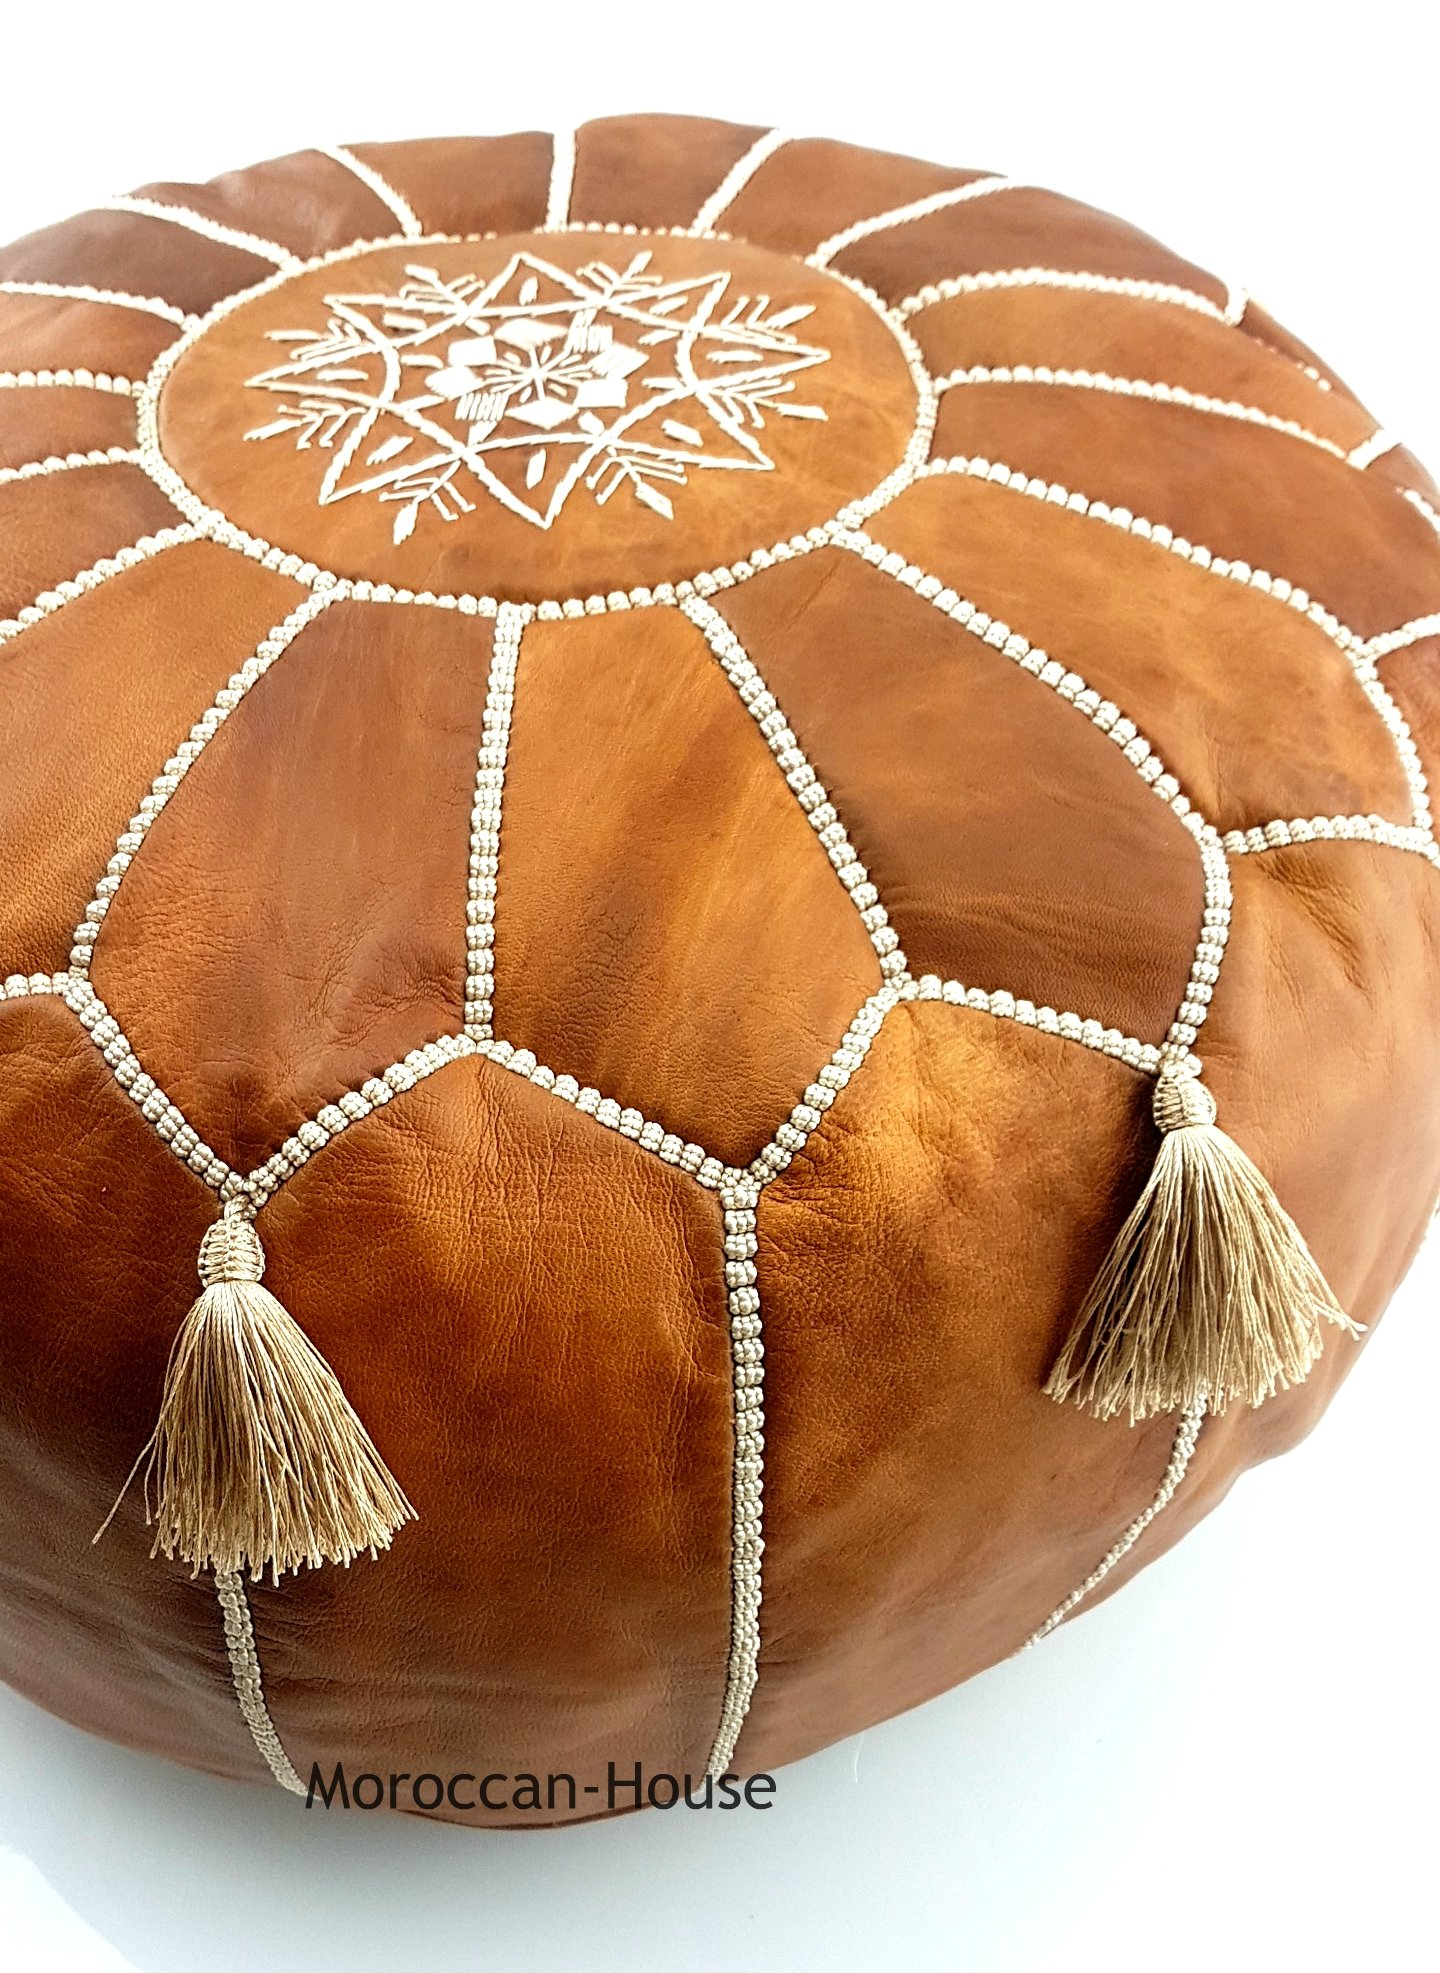 LIMITED EDITION Moroccan Leather Pouf Best offer ,100% handmade Ready to magic your living room! by Moroccan-House (Image #3)